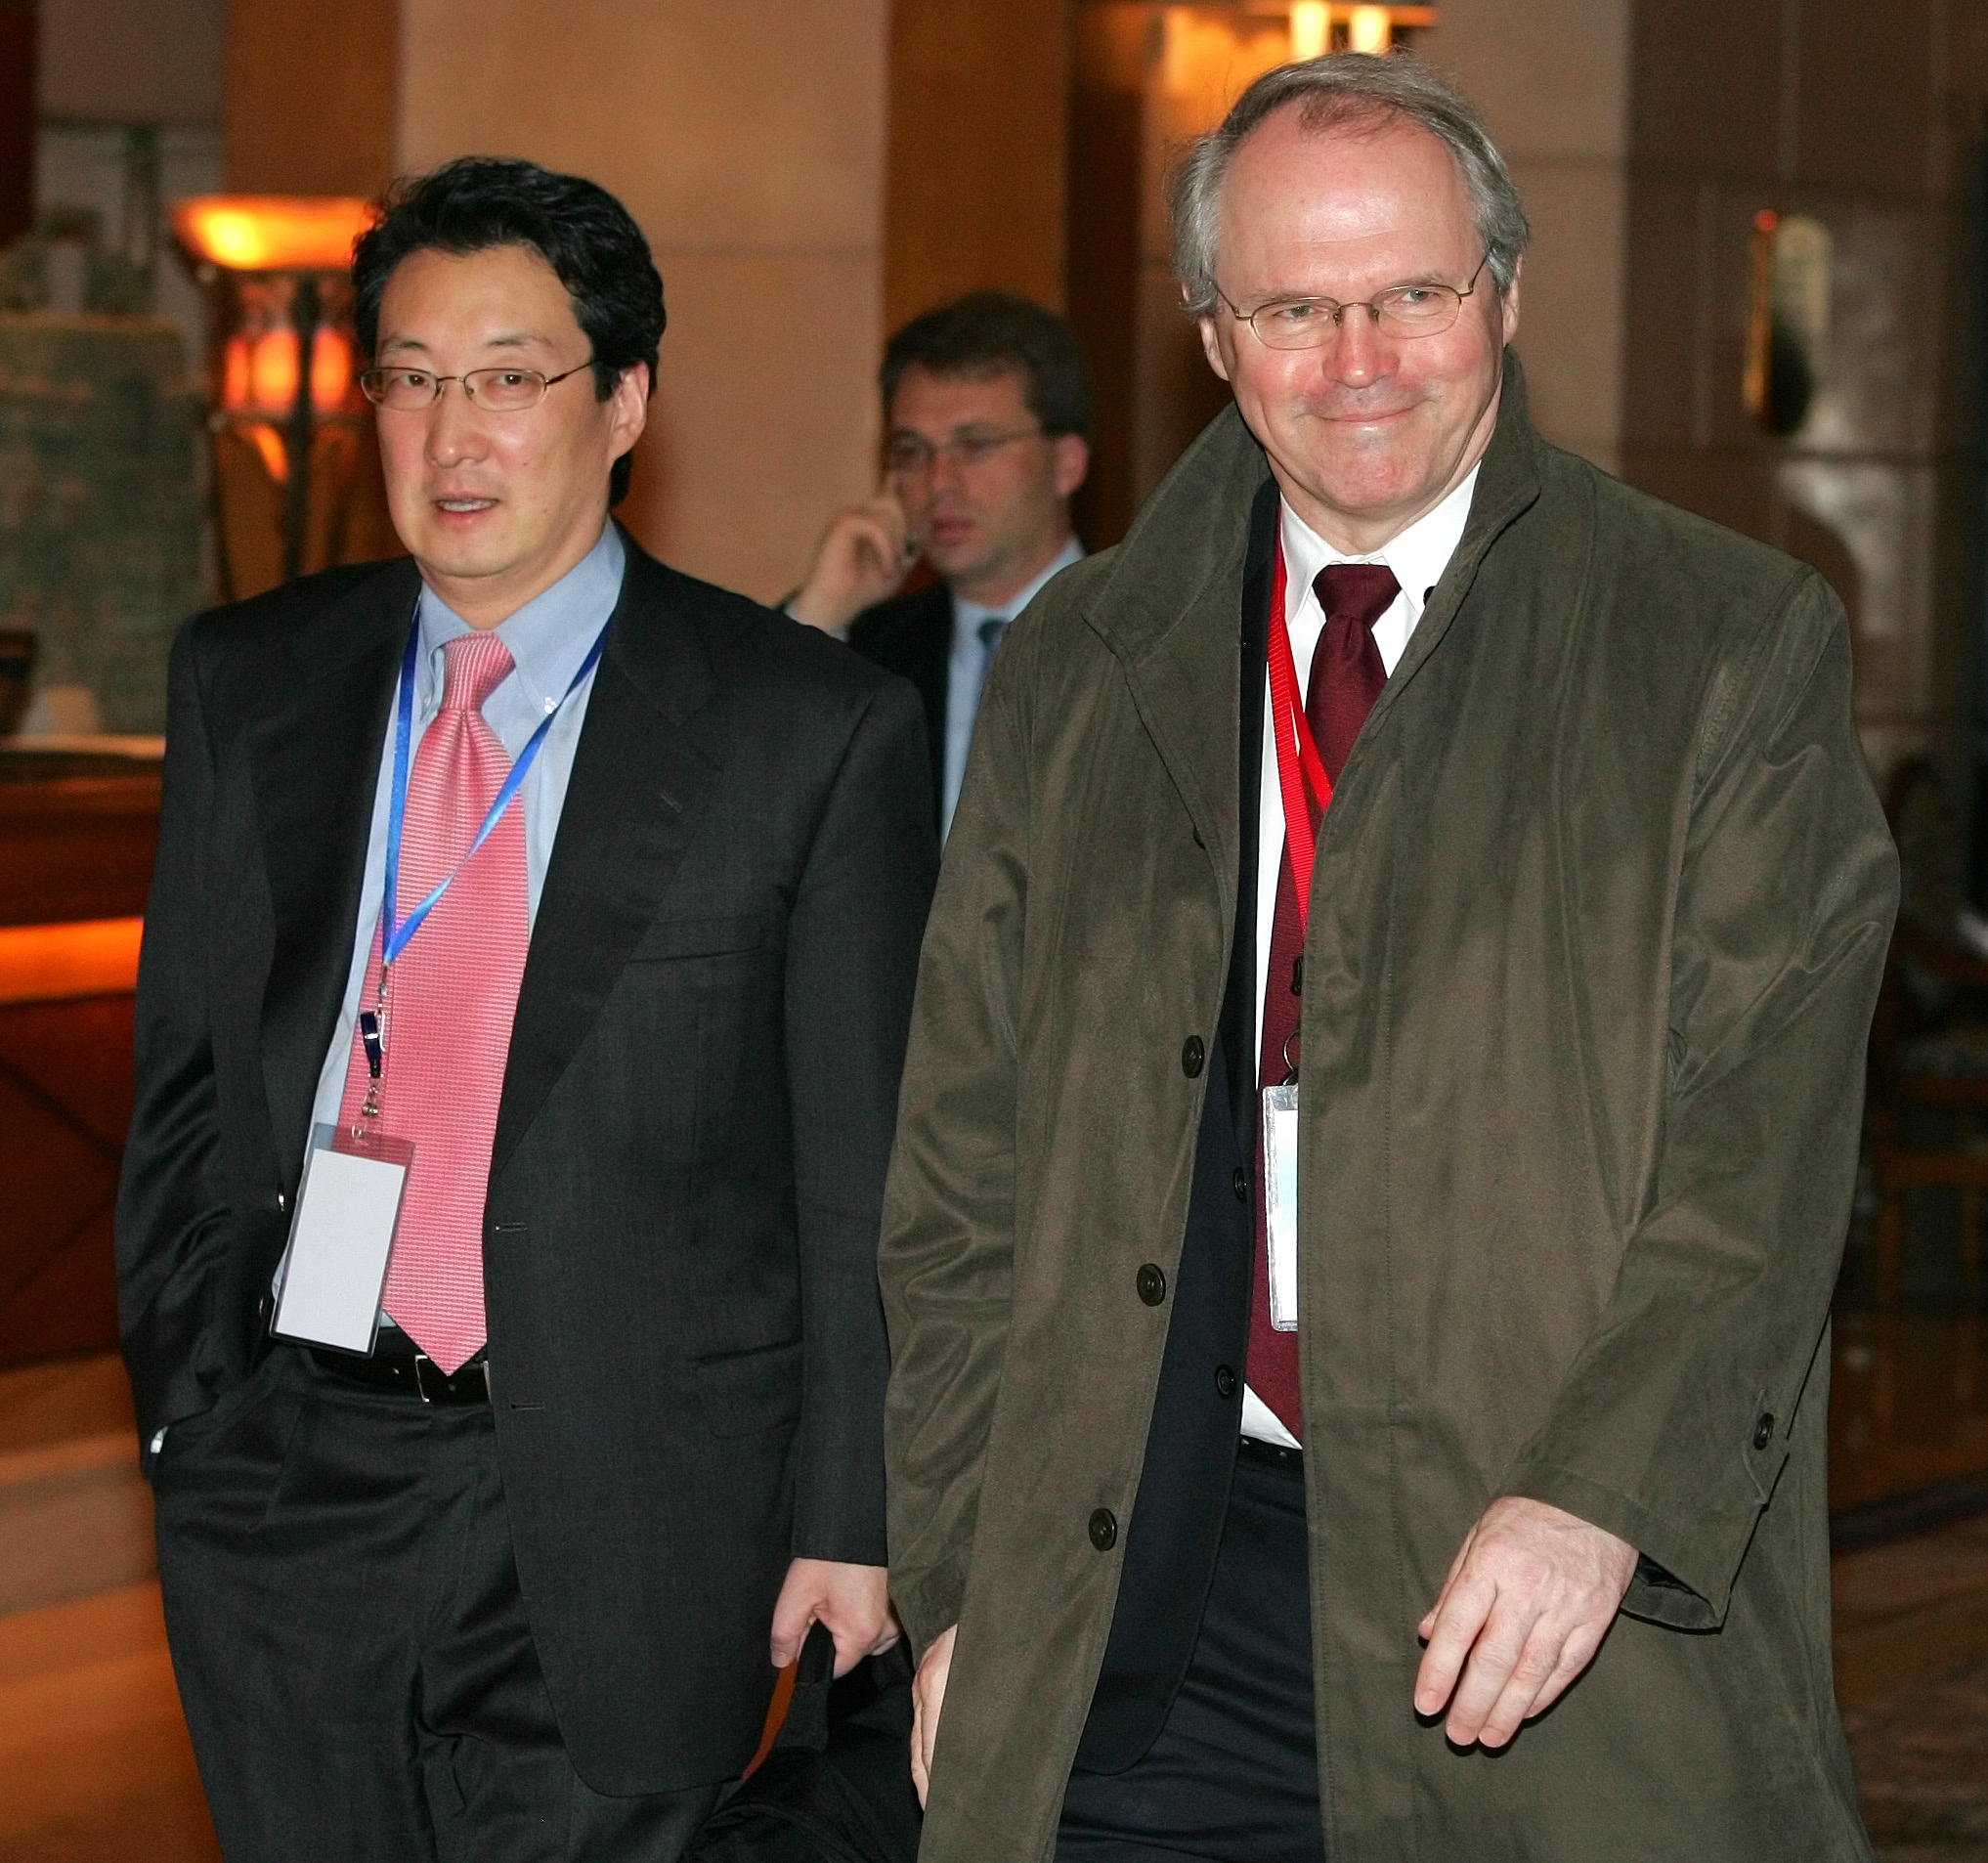 FILE - U.S. Assistant Secretary of State Christopher Hill, right, walks with Victor Cha, the U.S. National Security Council's director for Asian Affairs, before heading to six-party talks on North Korea's nuclear program, in Beijing, March 22, 2007.